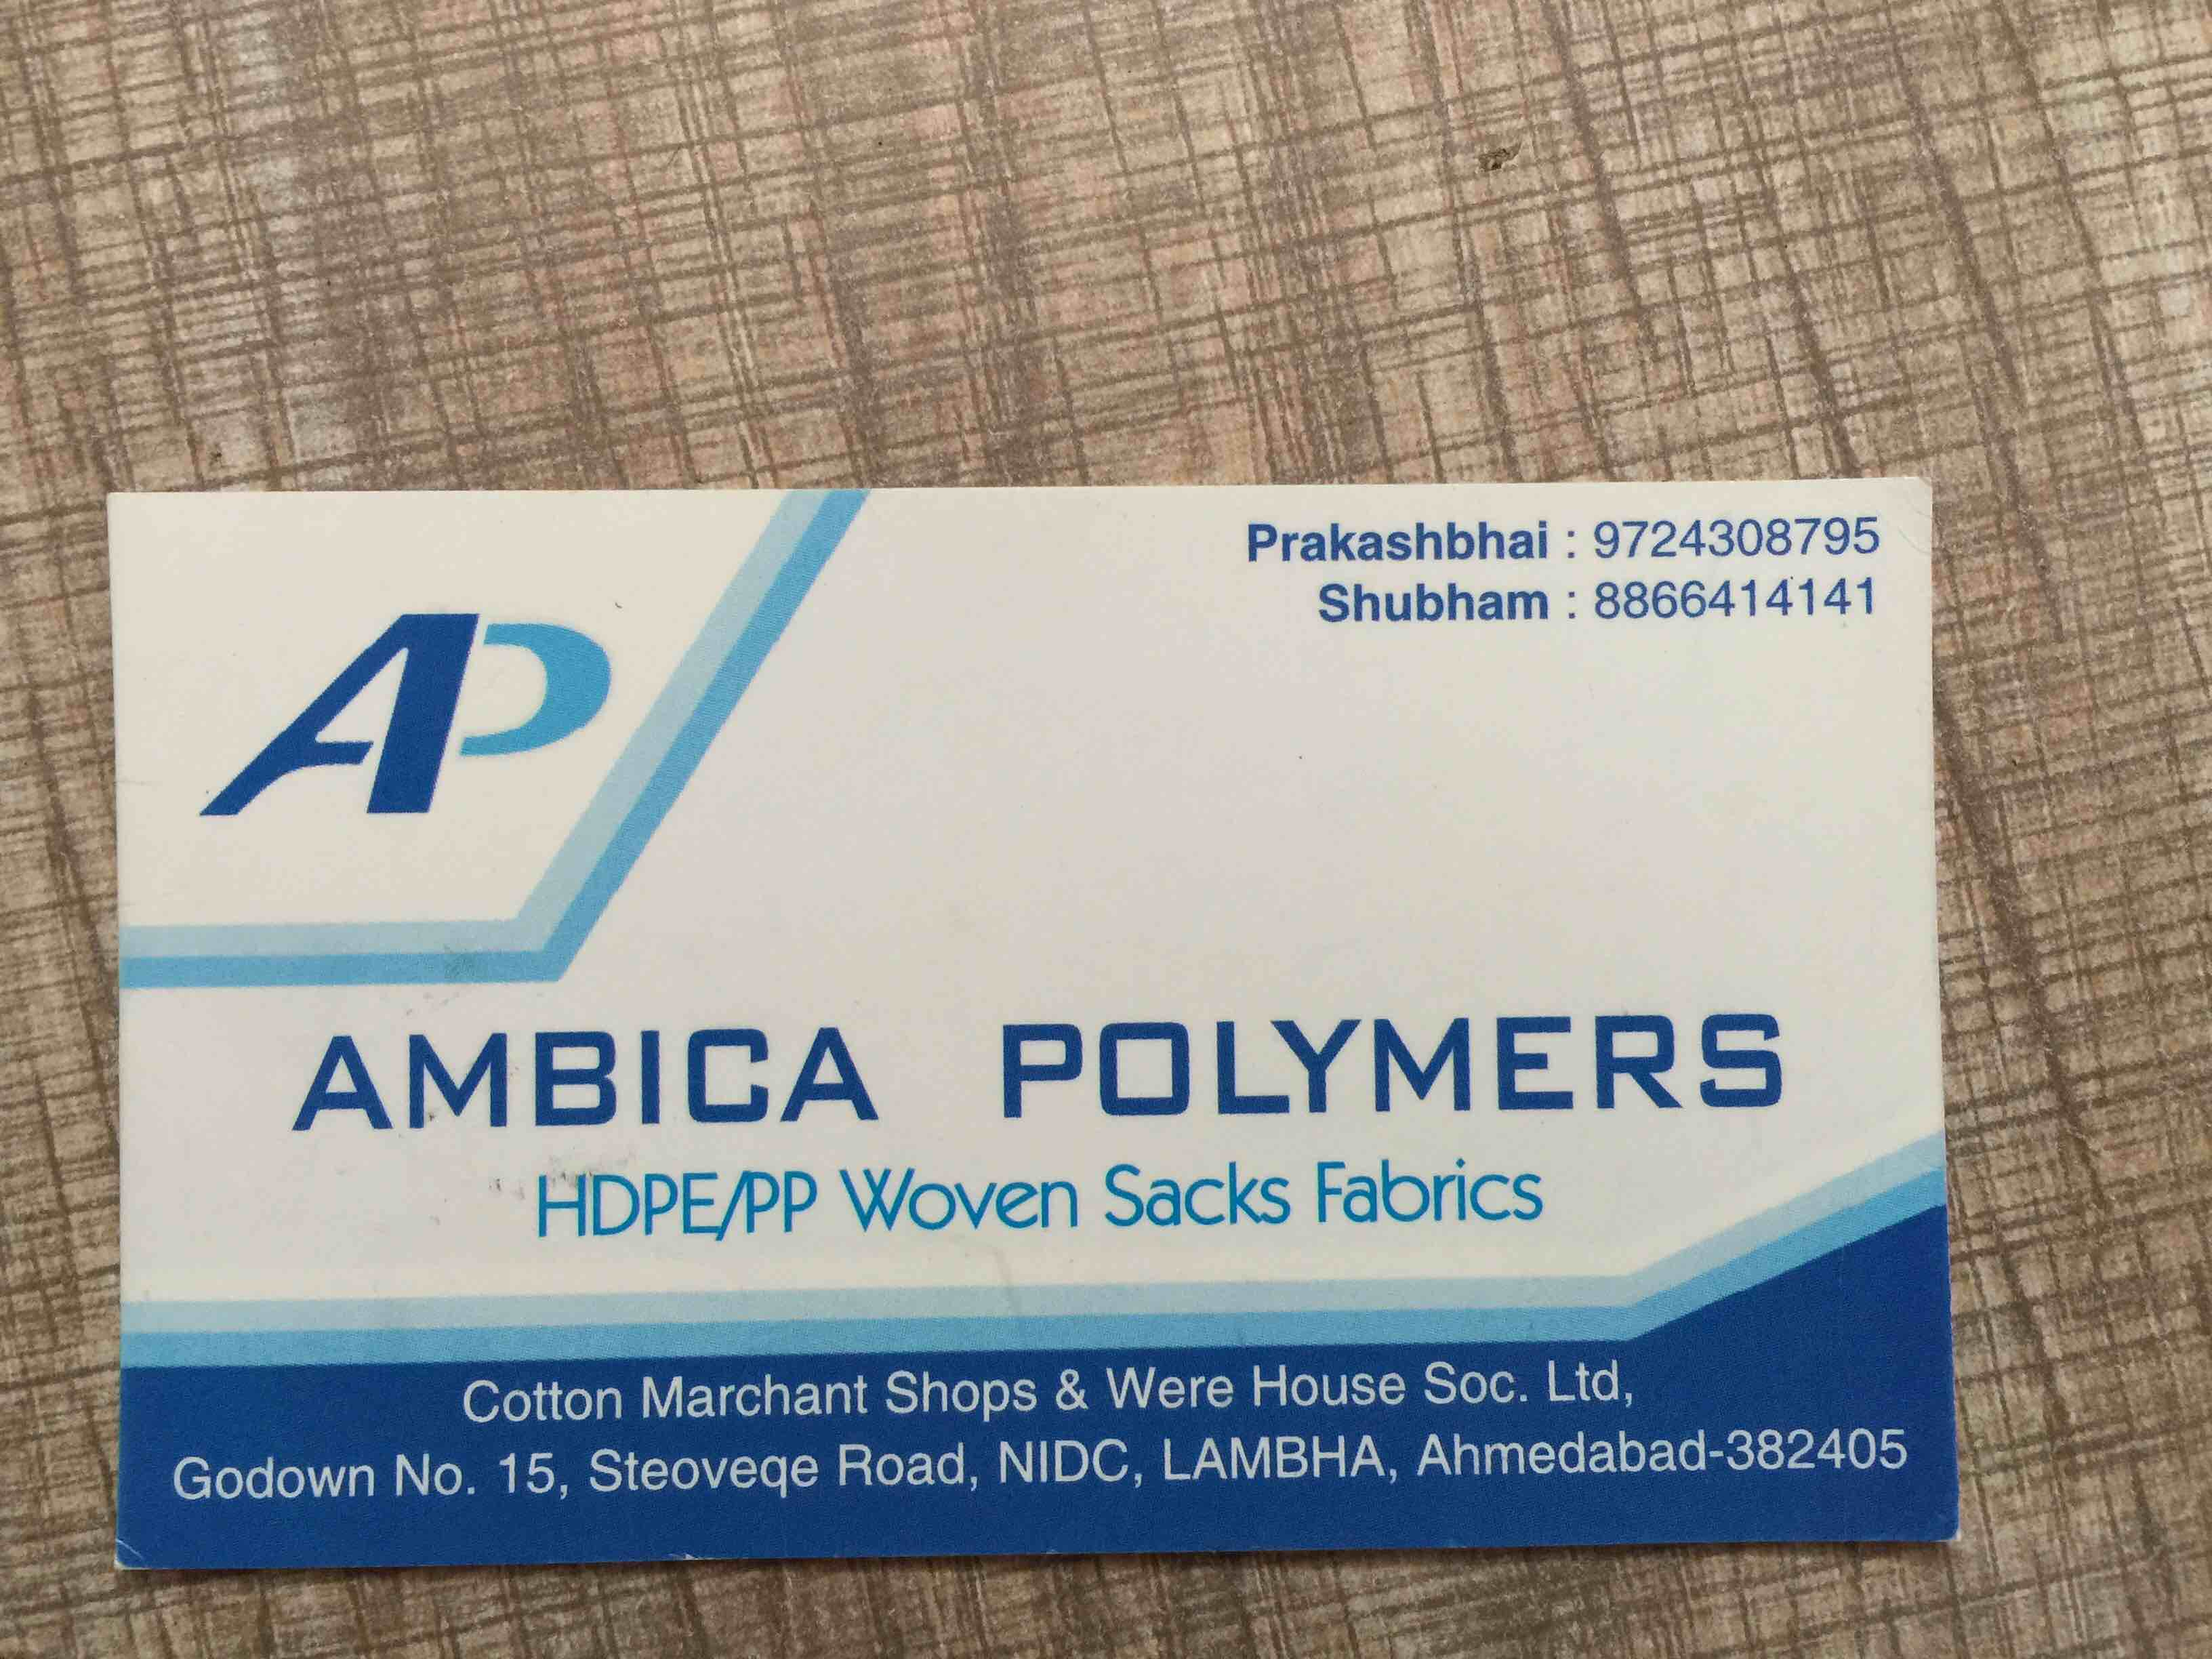 Ambica Polymers